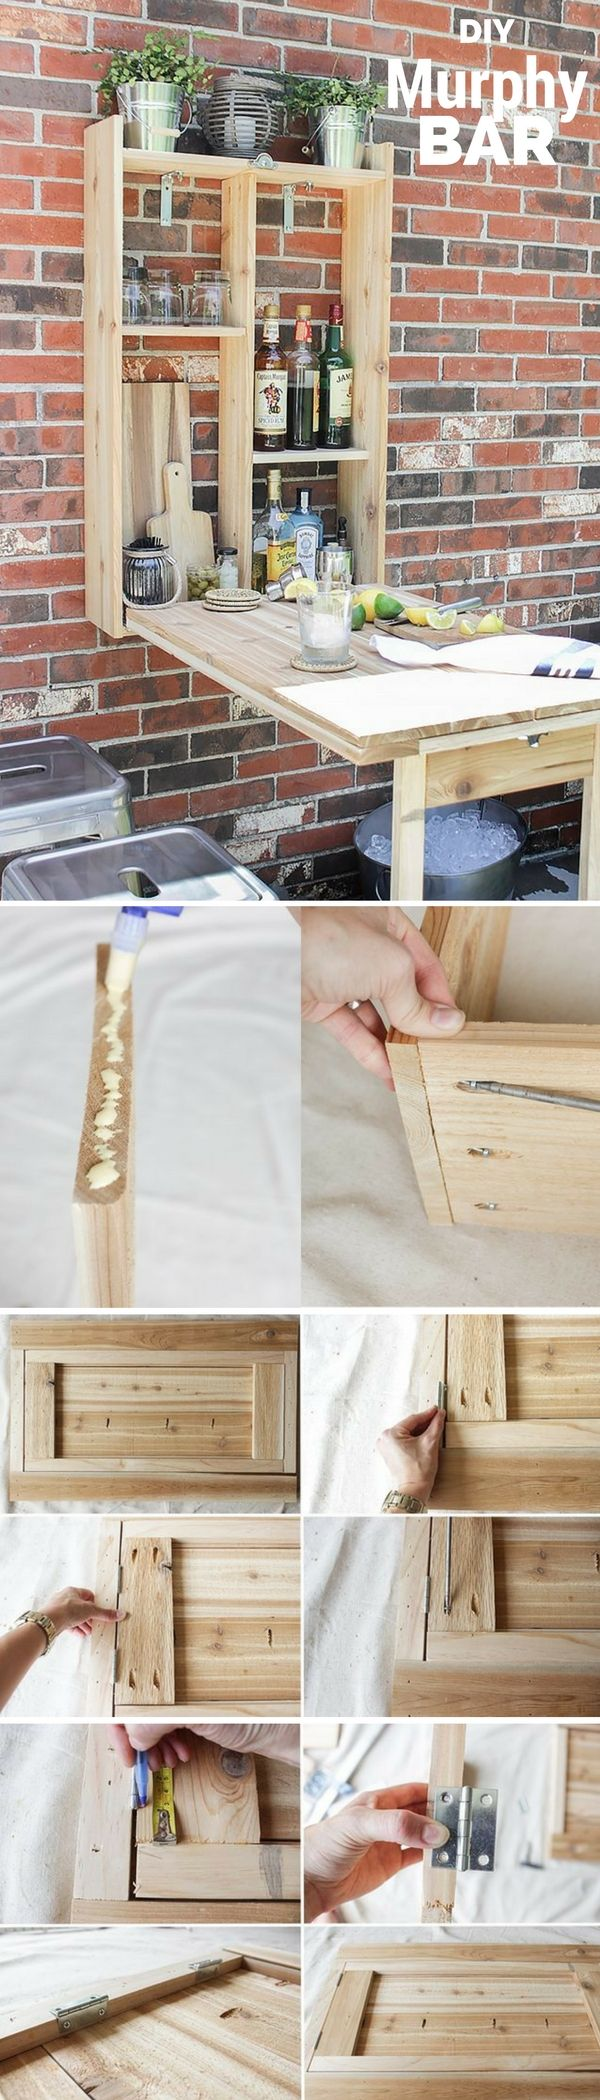 Check out the tutorial: #DIY Murphy Bar @istandarddesign